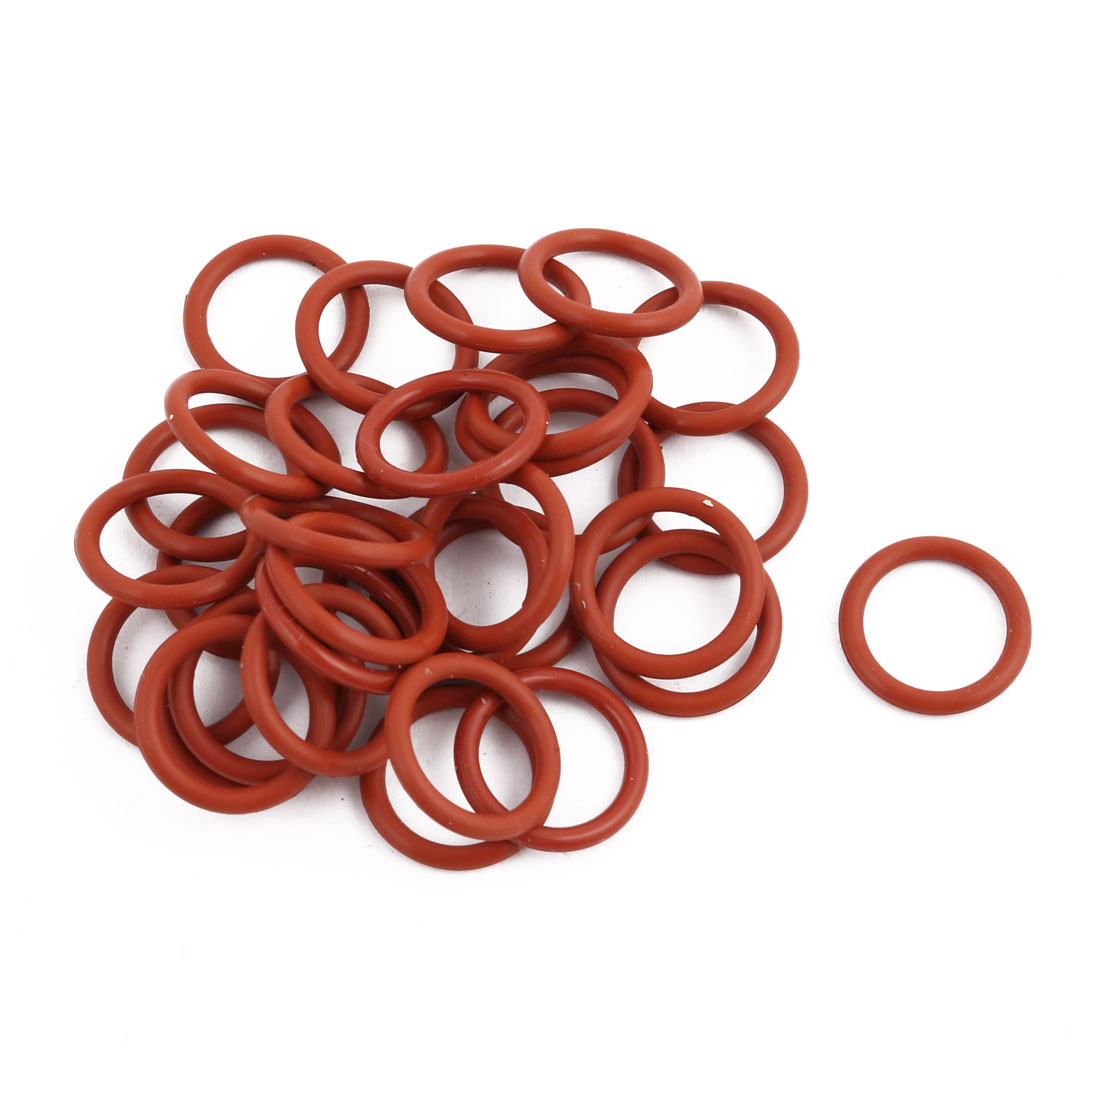 30Pcs Red Round Nitrile Butadiene Rubber NBR O-Ring 15mm OD 1.9mm Width